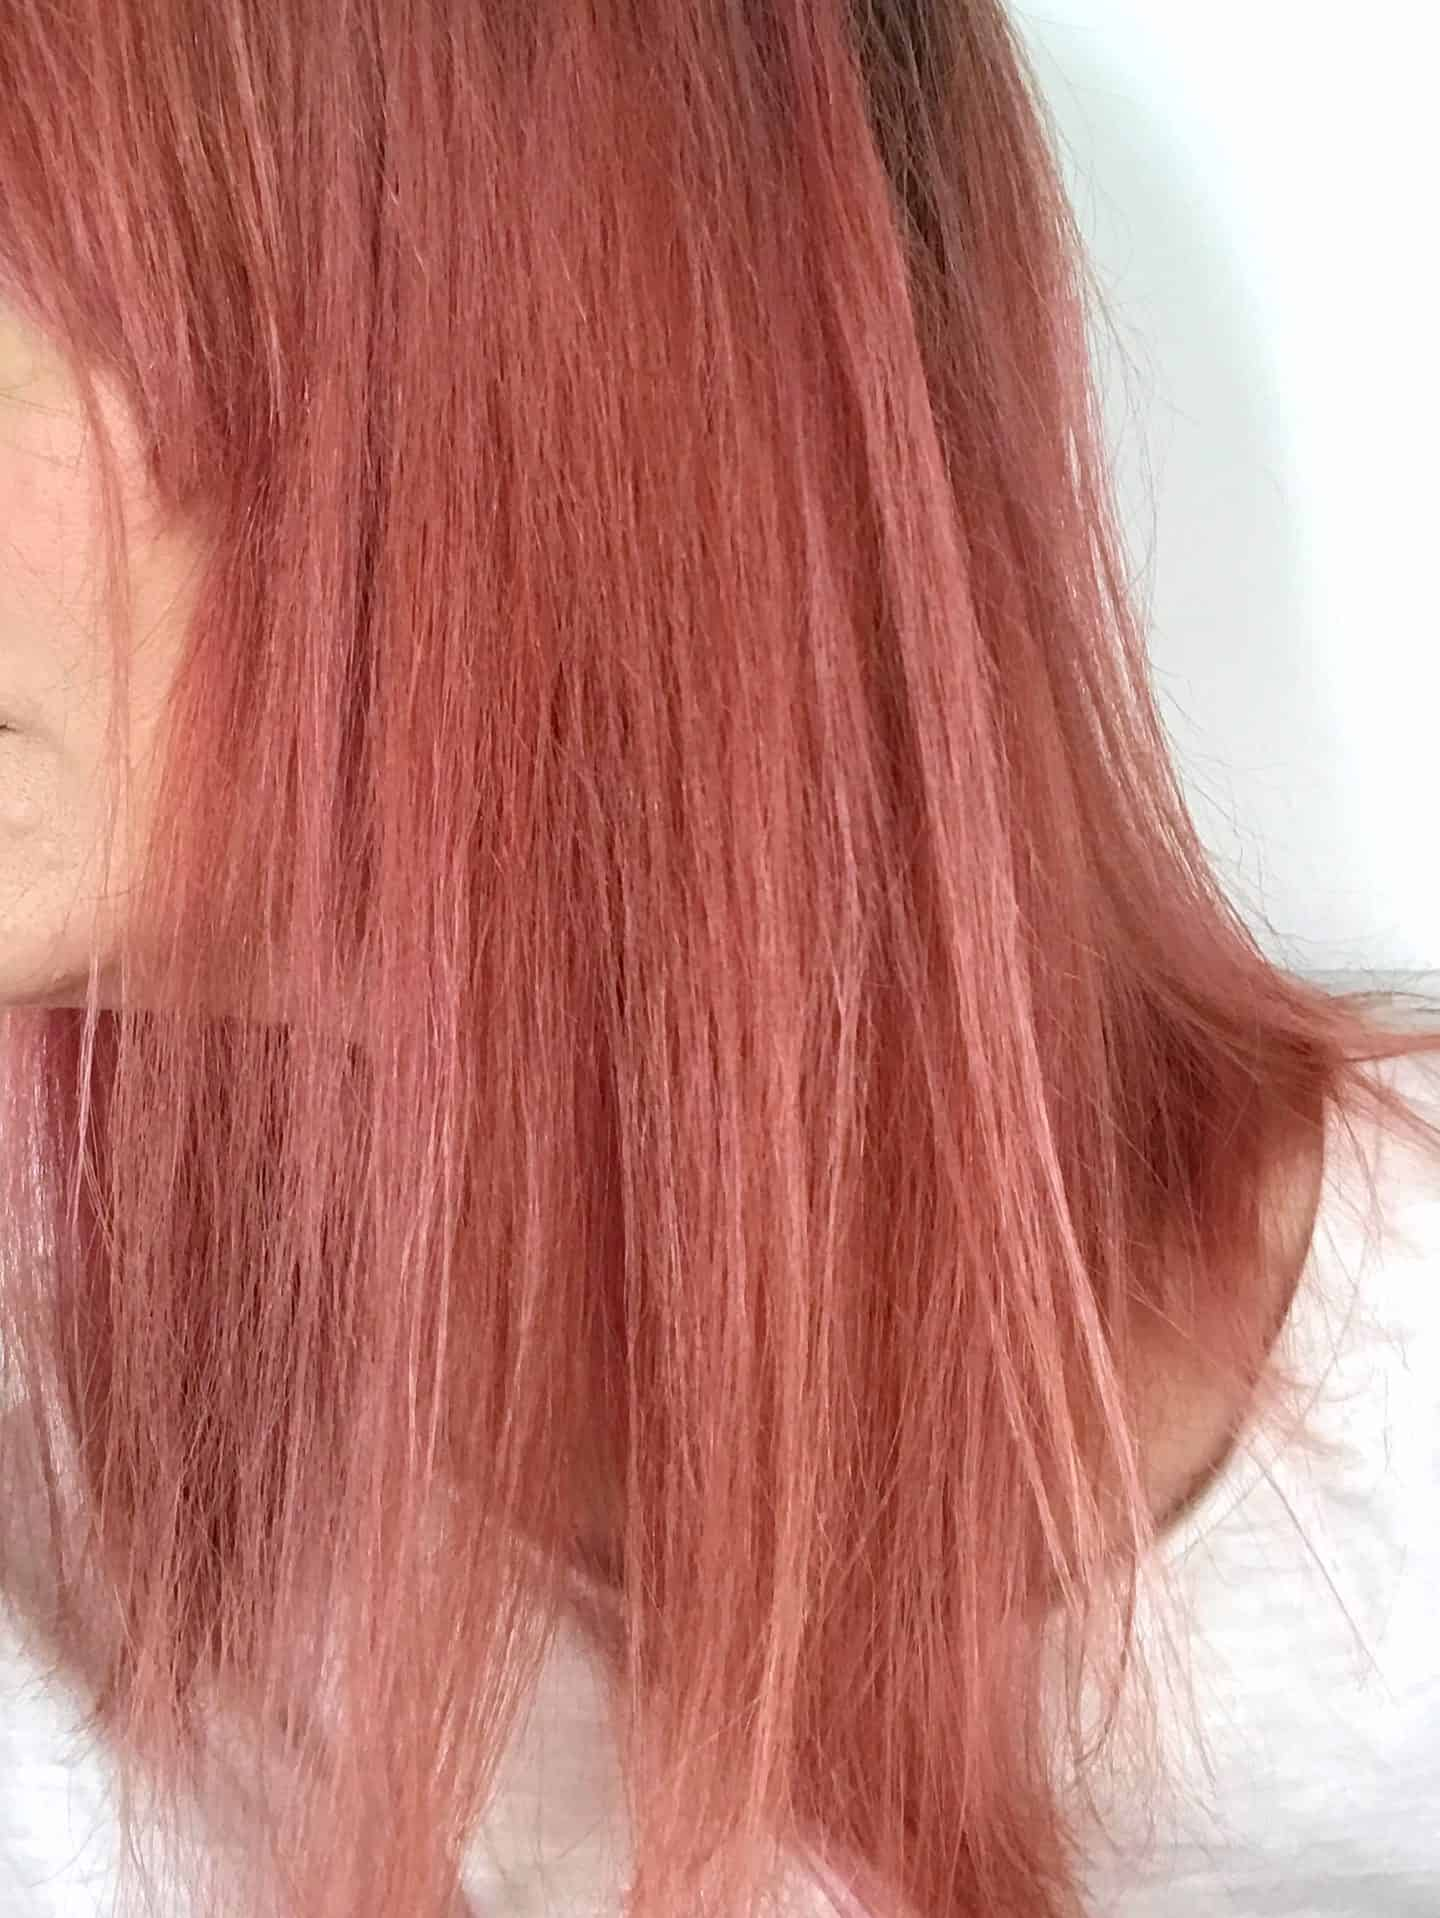 Side view of hair after leaving My. colour Ruby Shampoo on dry hair for 30 minutes